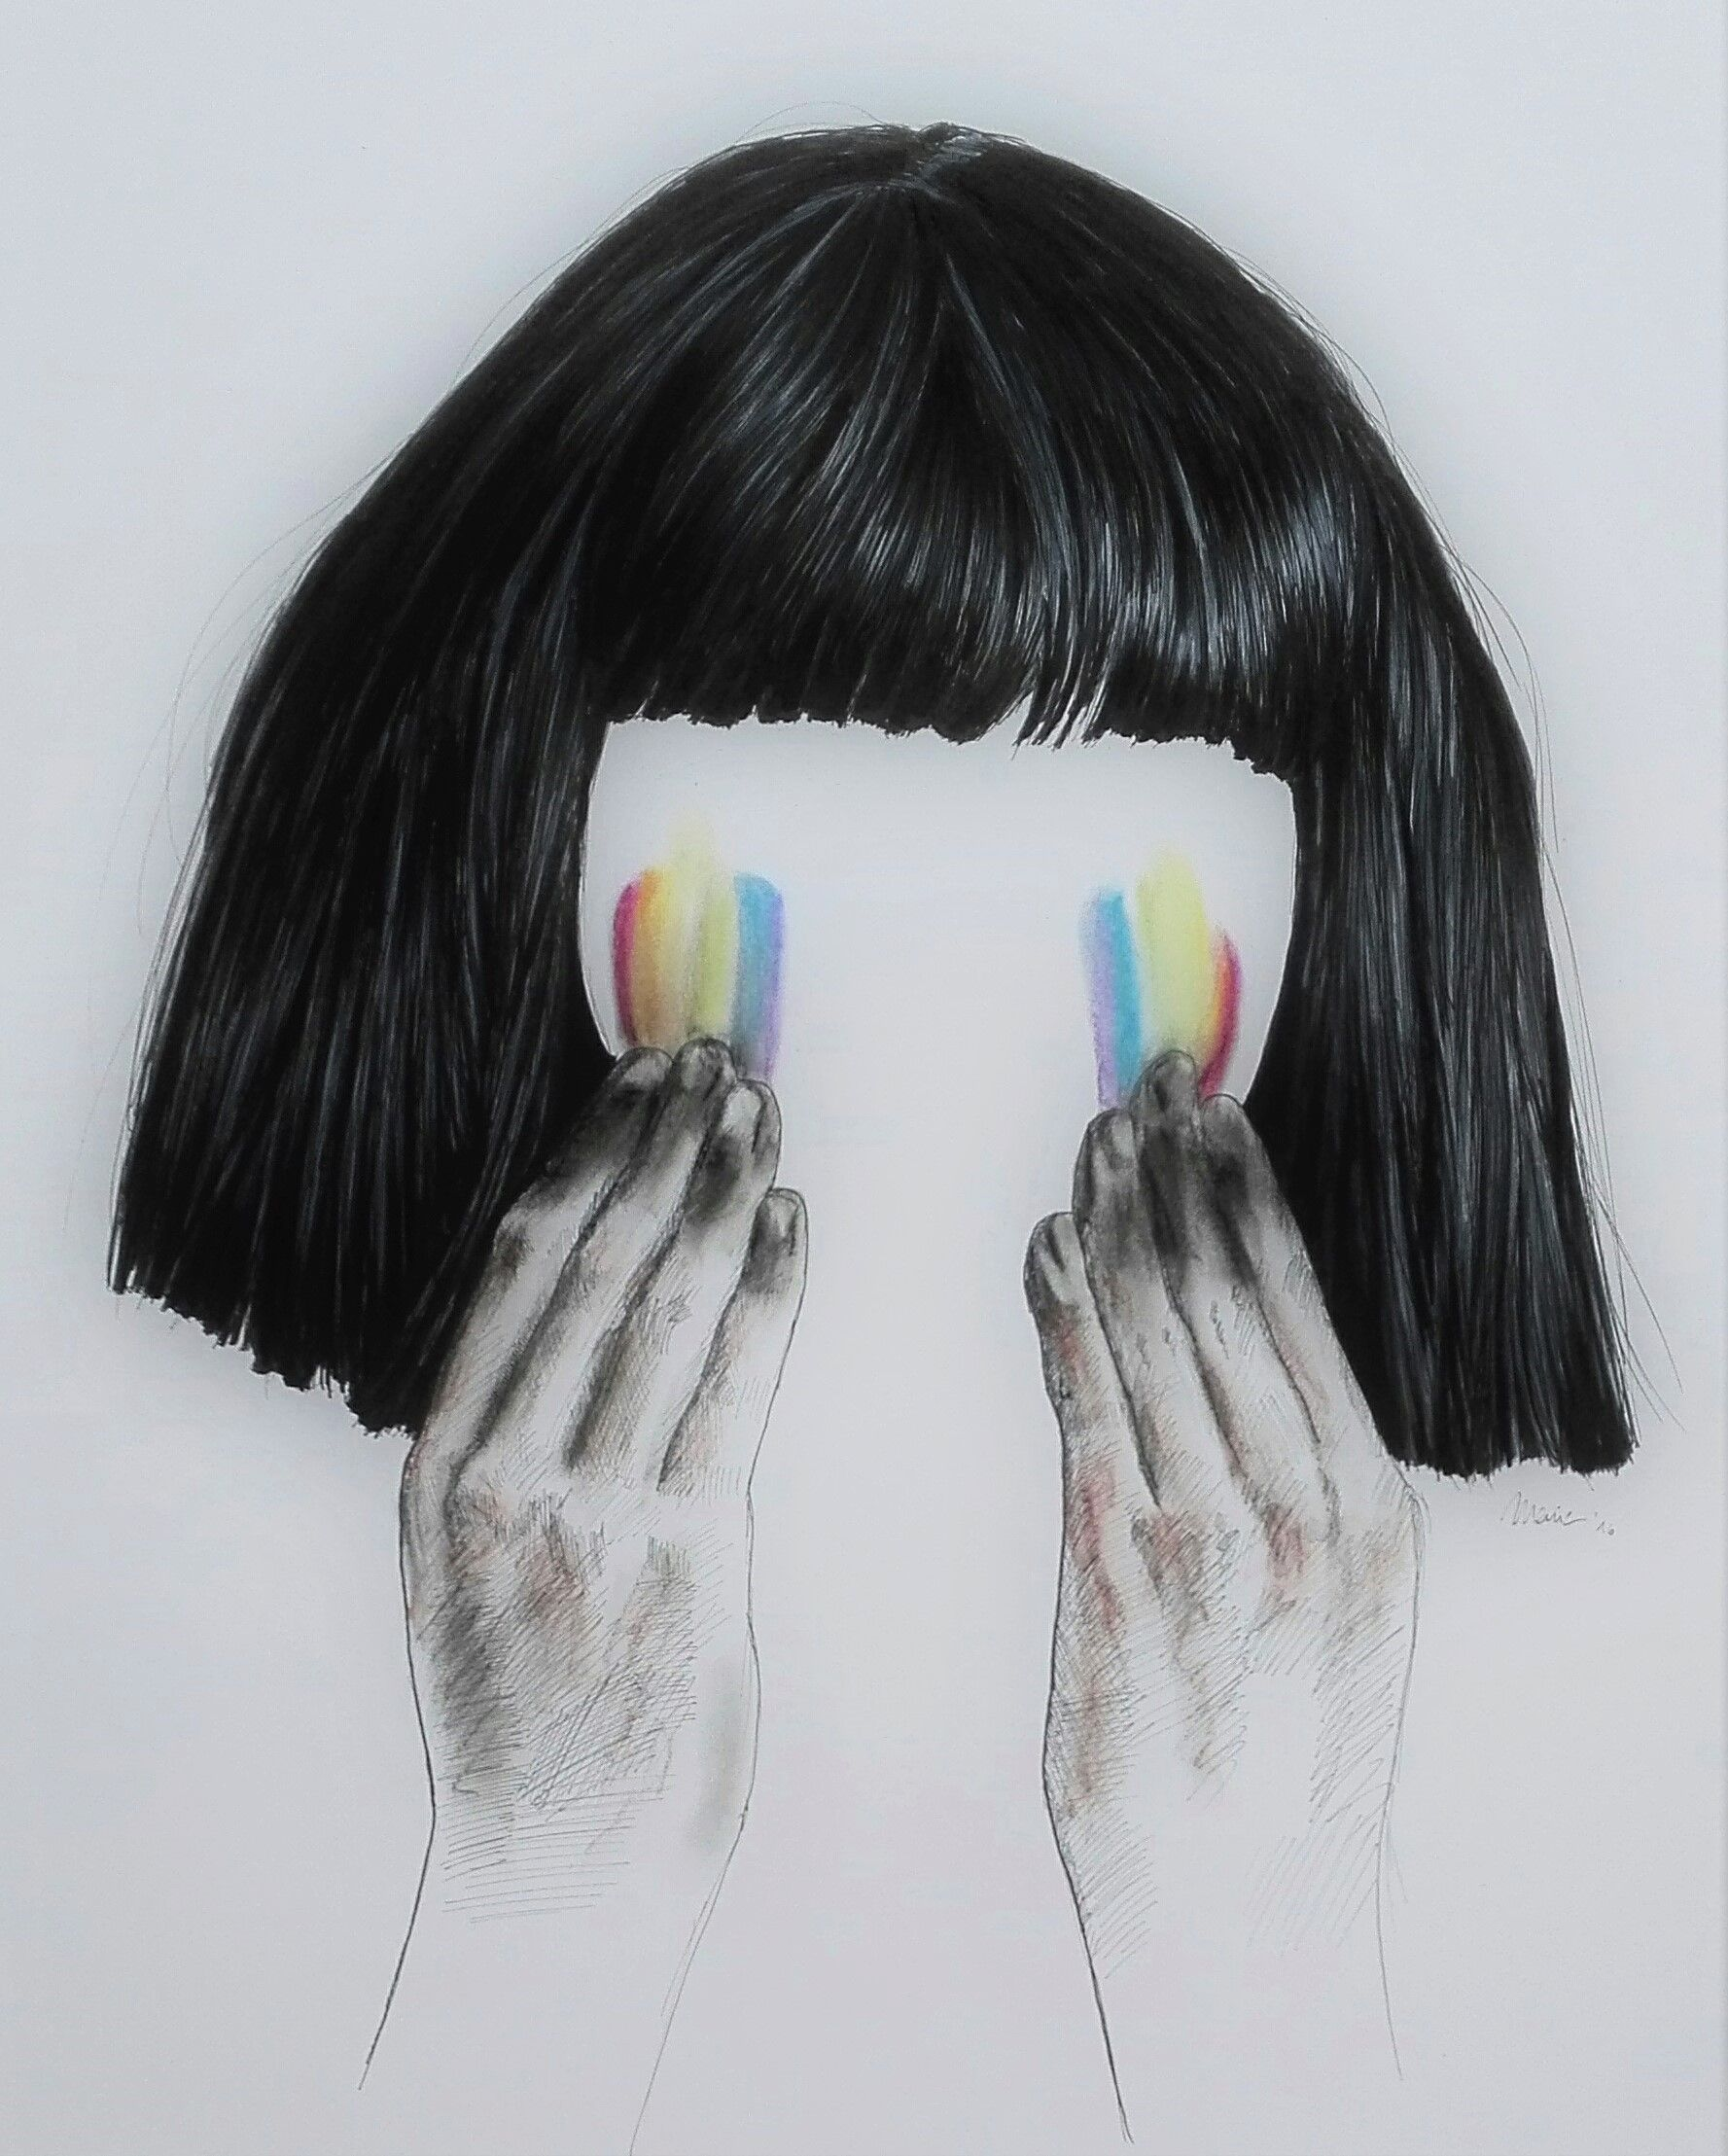 The greatest by sia with maddie ziegler by marie luise sehn the greatest by sia with maddie ziegler by marie luise sehn fineliner pastel chalk this song motivated me to handle my hardships gracefully arubaitofo Image collections